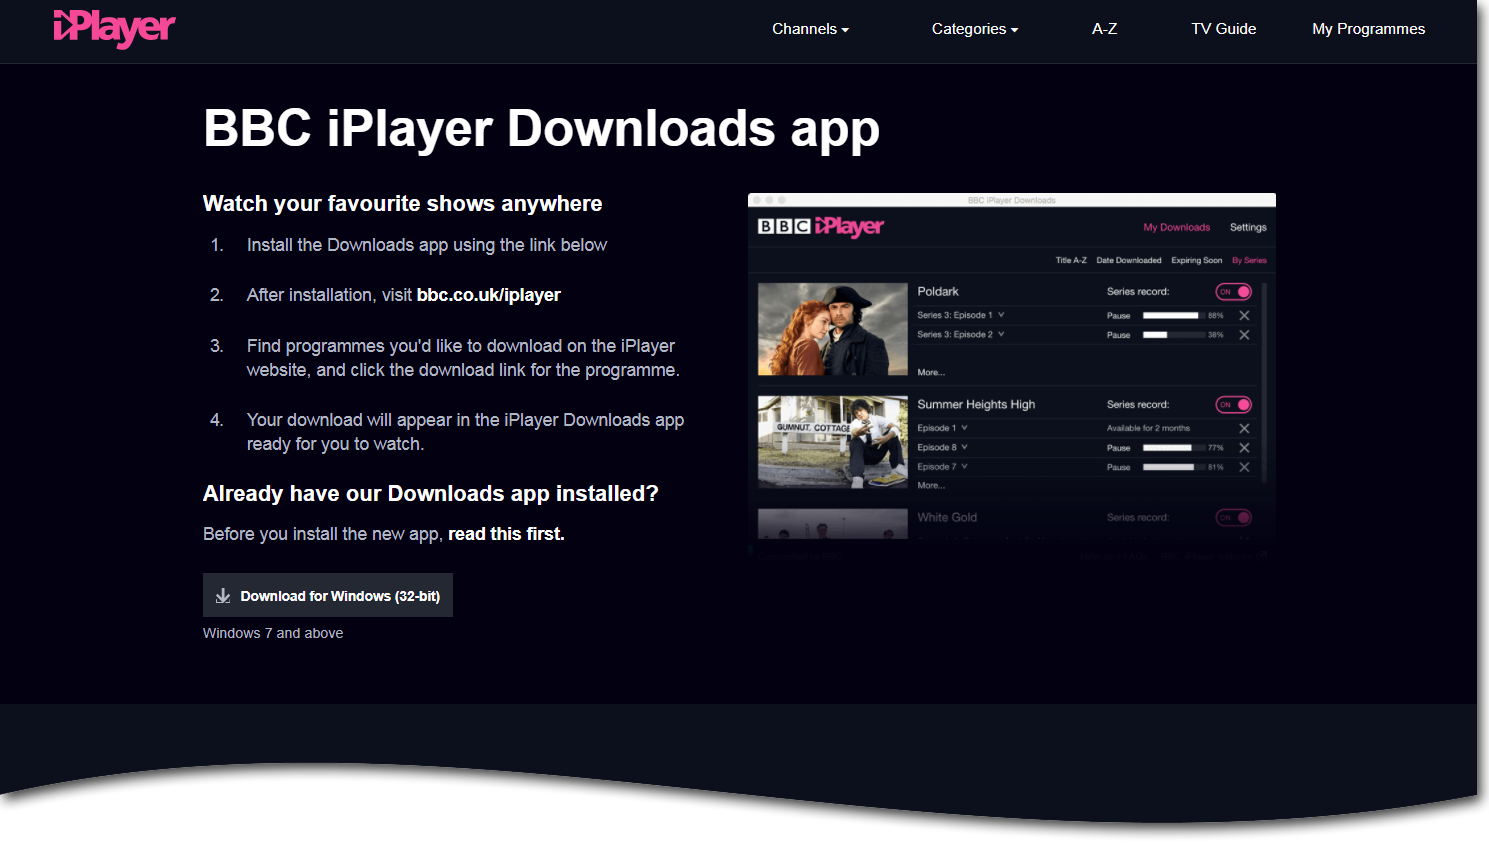 Installation page on BBC iPlayer website for BBC iPlayer Downloads application